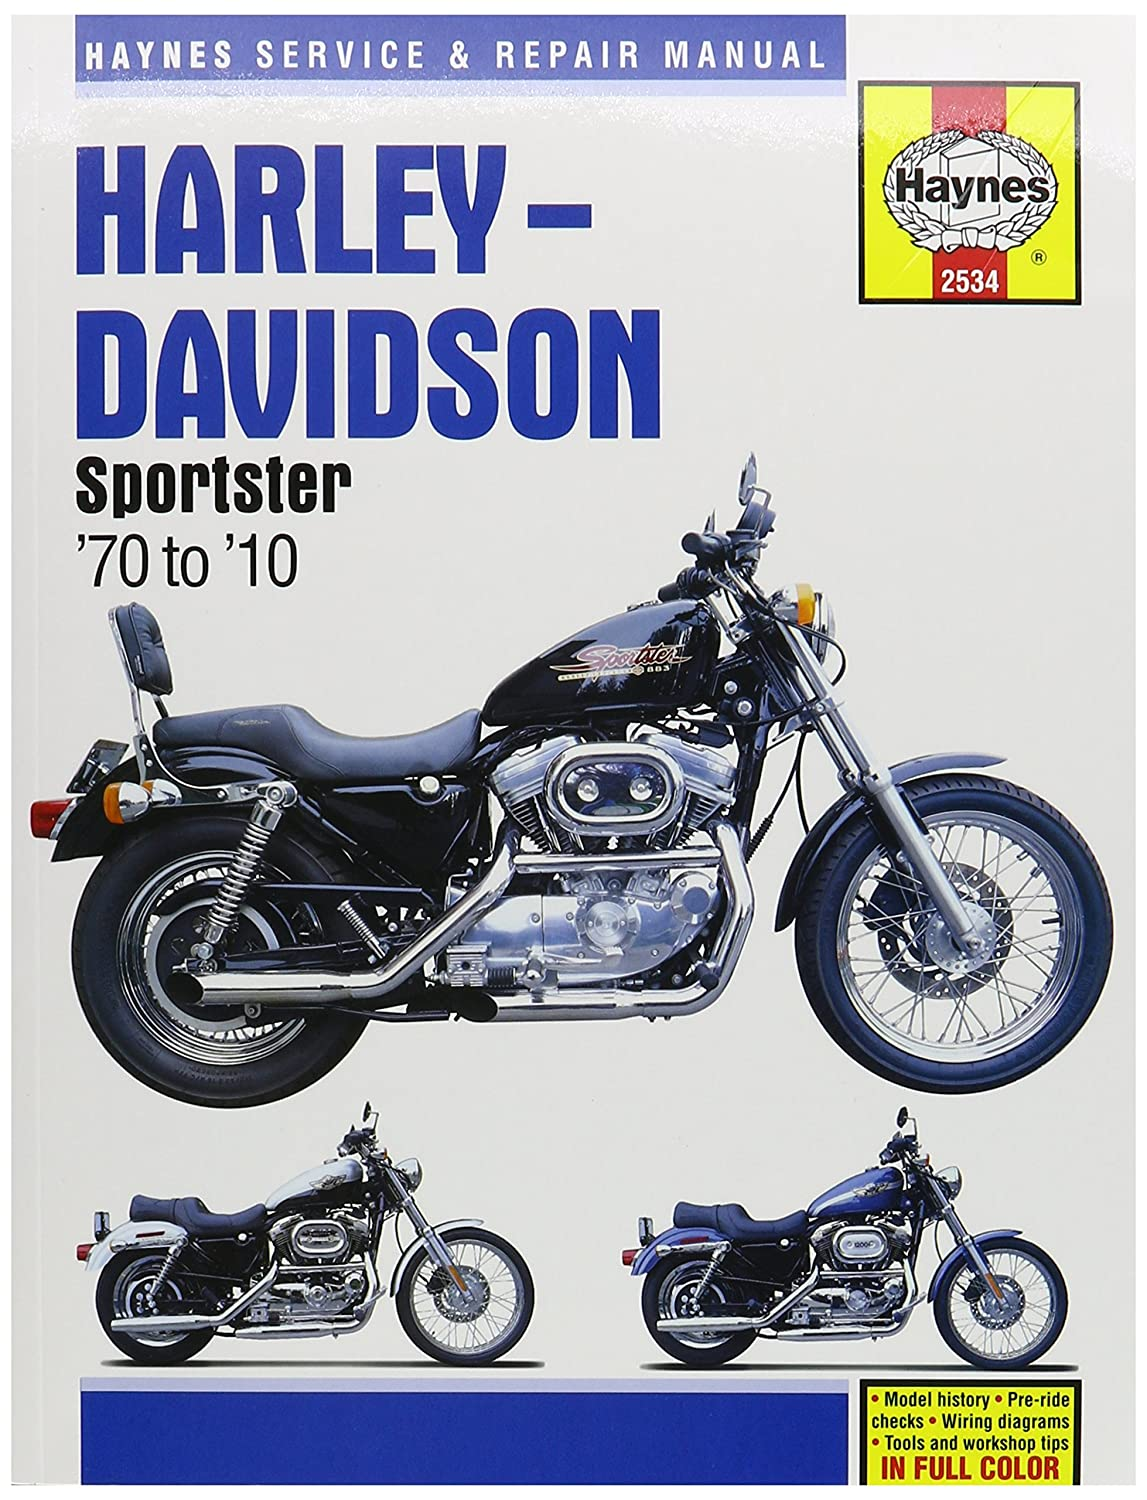 91ZCof3BVHL._SL1500_ amazon com 1970 2013 harley davidson sportster xl 883 1200 haynes harley davidson motorcycle diagrams at gsmx.co